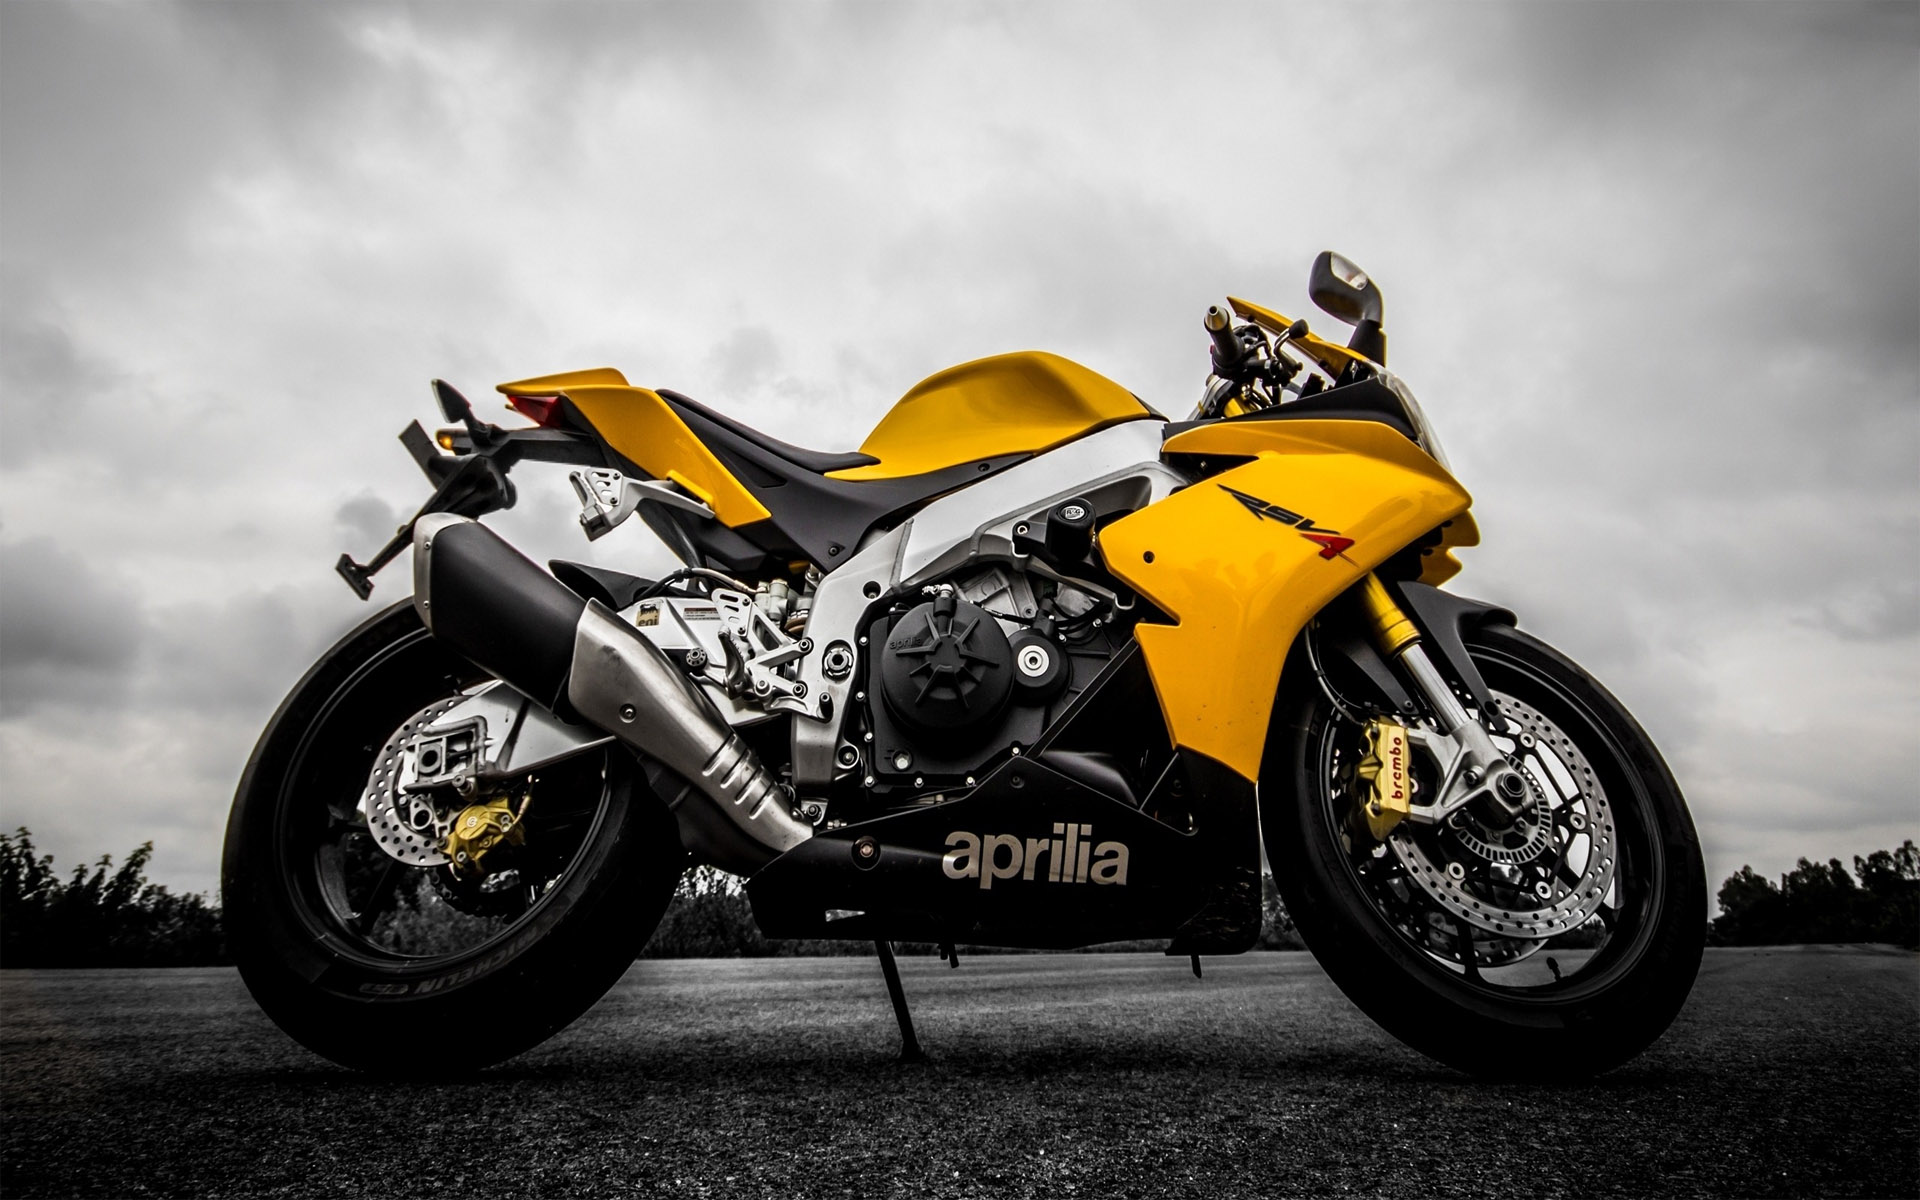 Aprilia Rsv4 HD Wallpaper